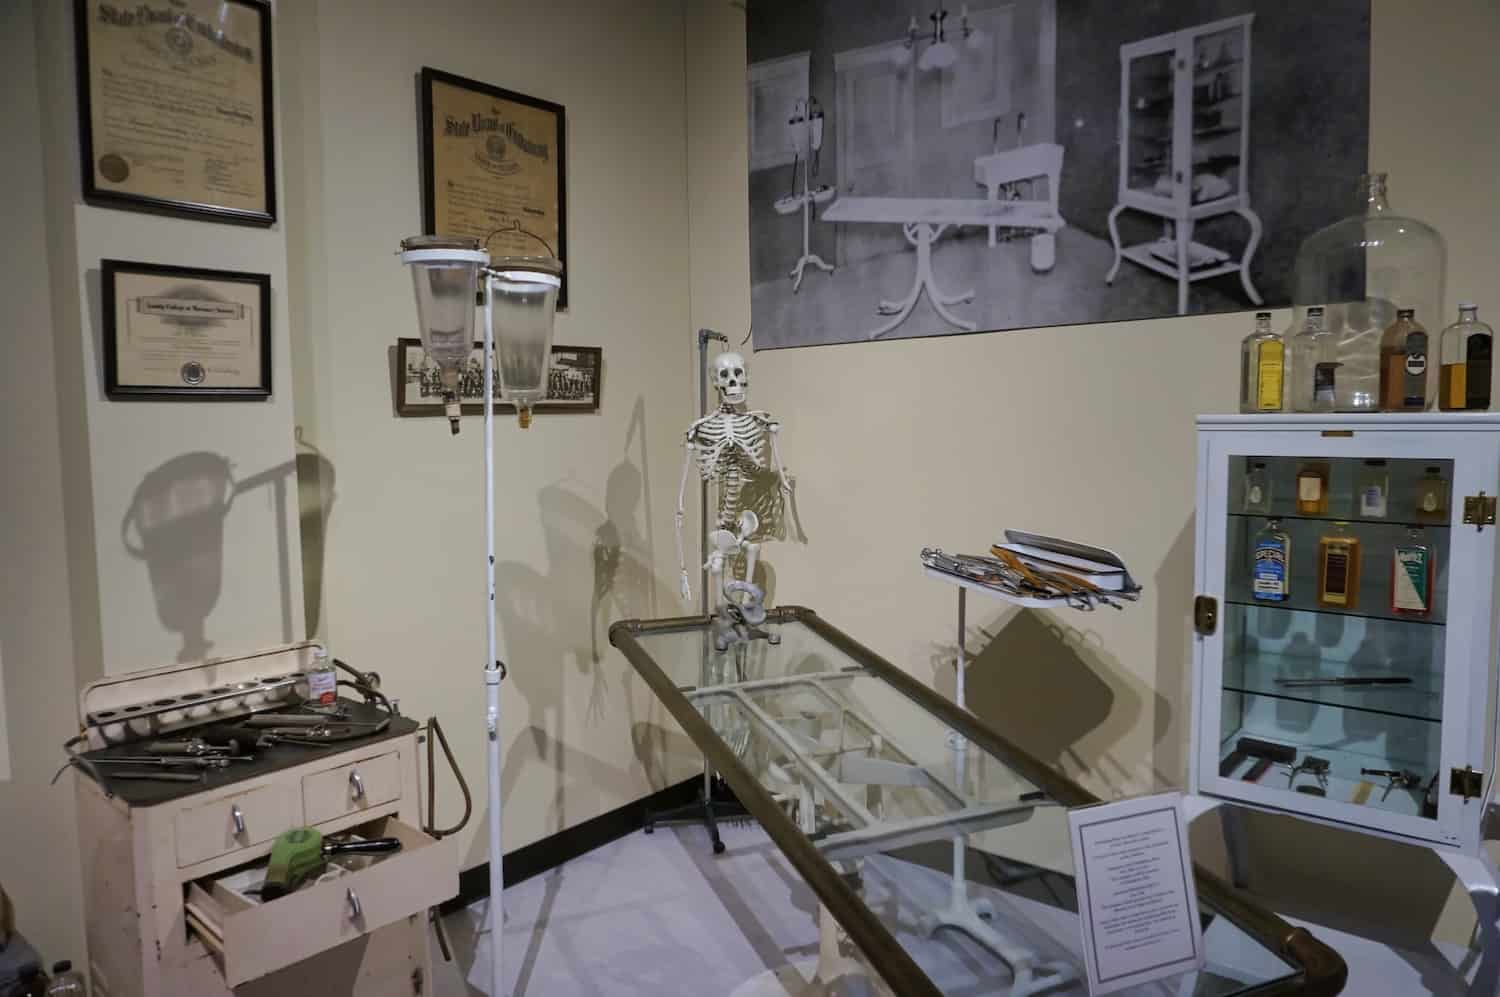 3 Days in Houston - National Museum of Funerary History